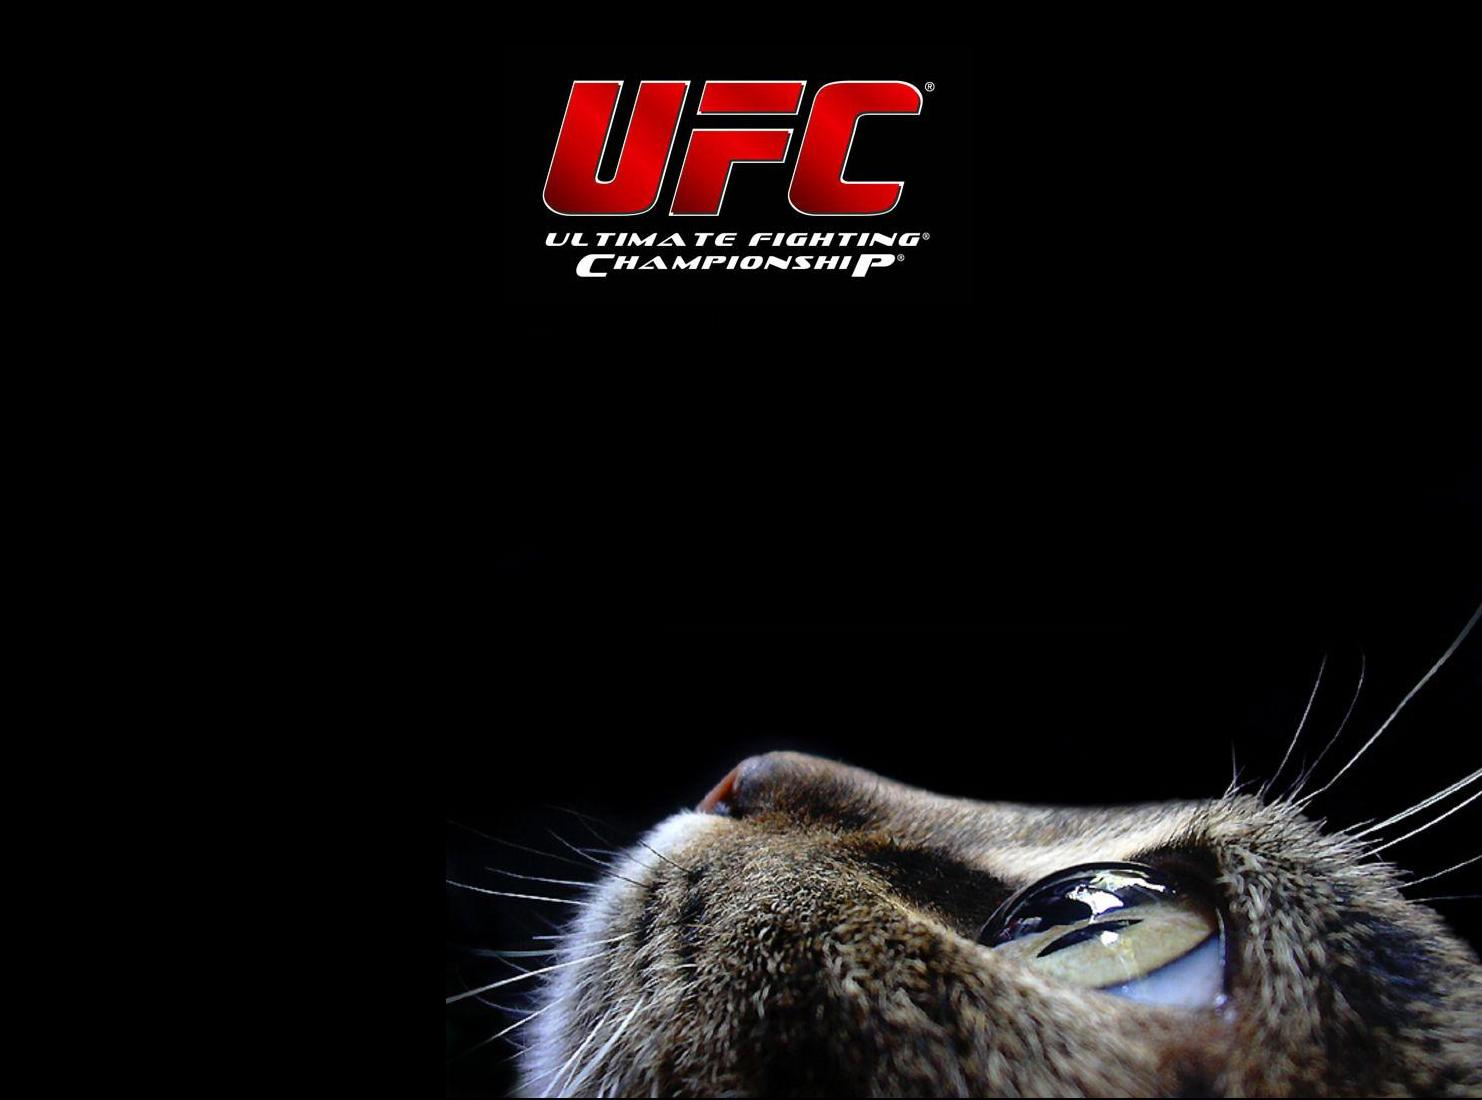 UFC Gallery UFC MMA Wallpaper Desktop Background Images 1482x1100